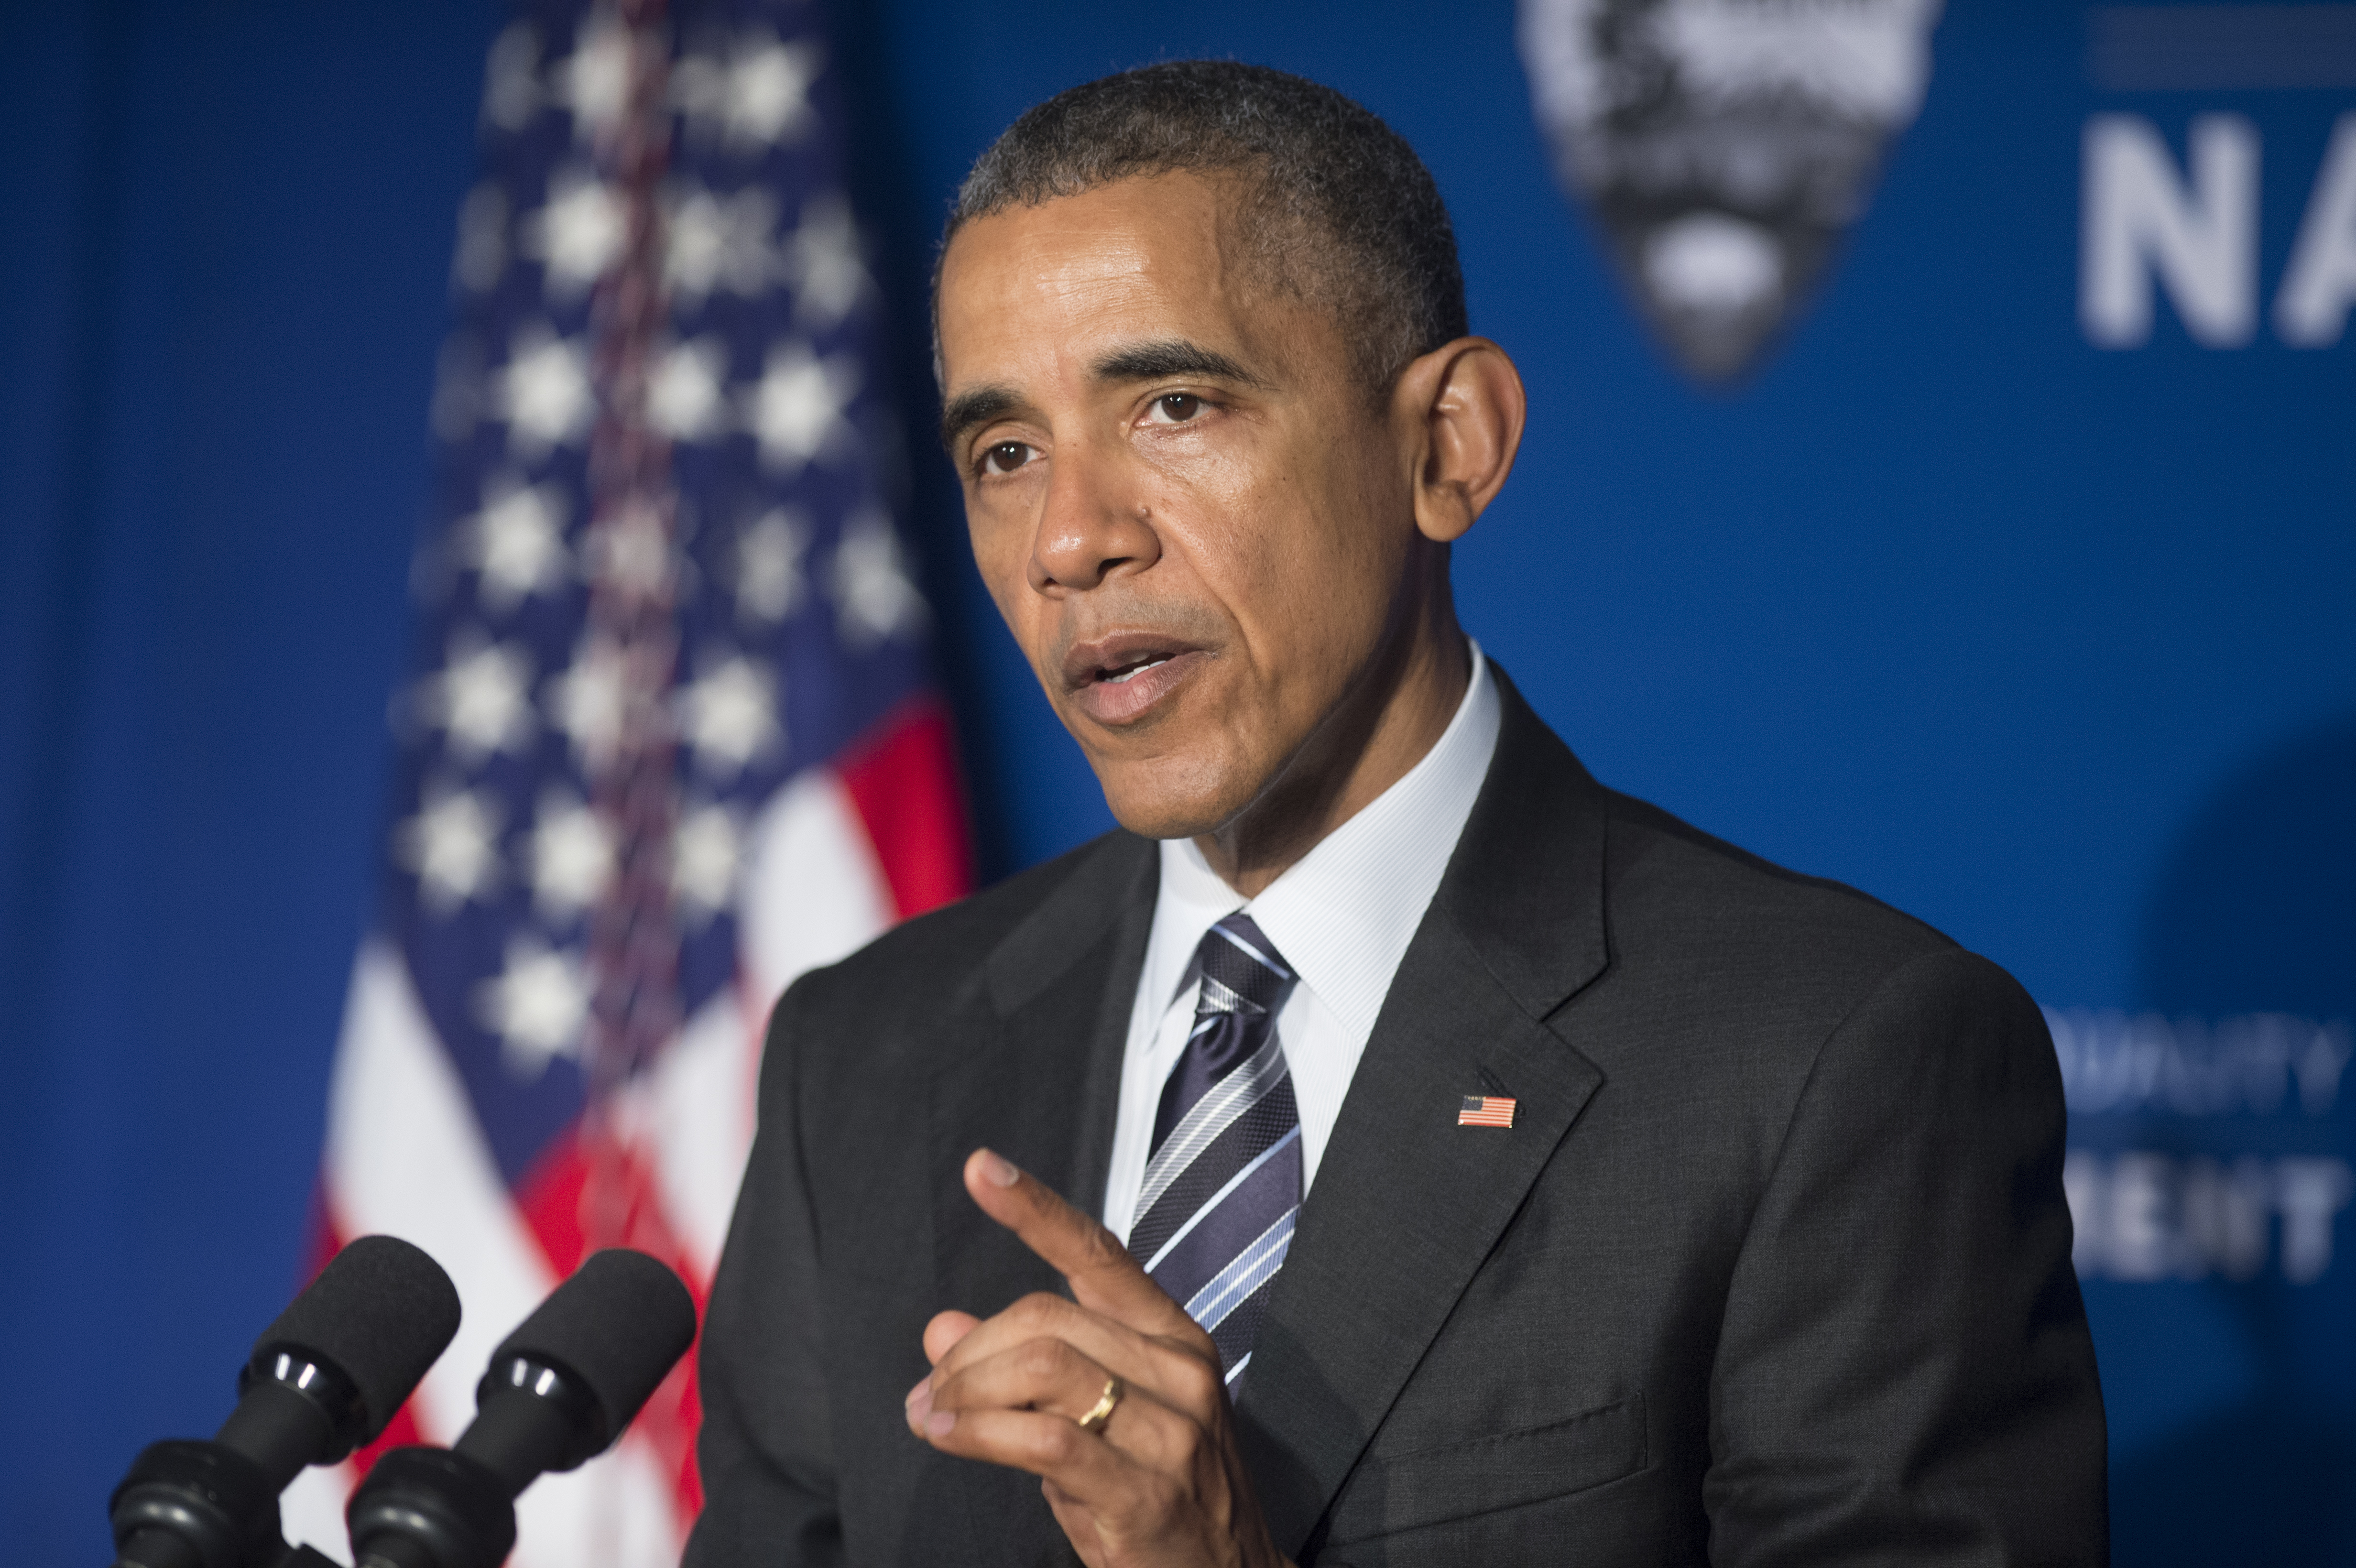 President Barack Obama delivers remarks at the newly-designated Belmont-Paul Women's Equality National Monument on April 12 in Washington, DC.